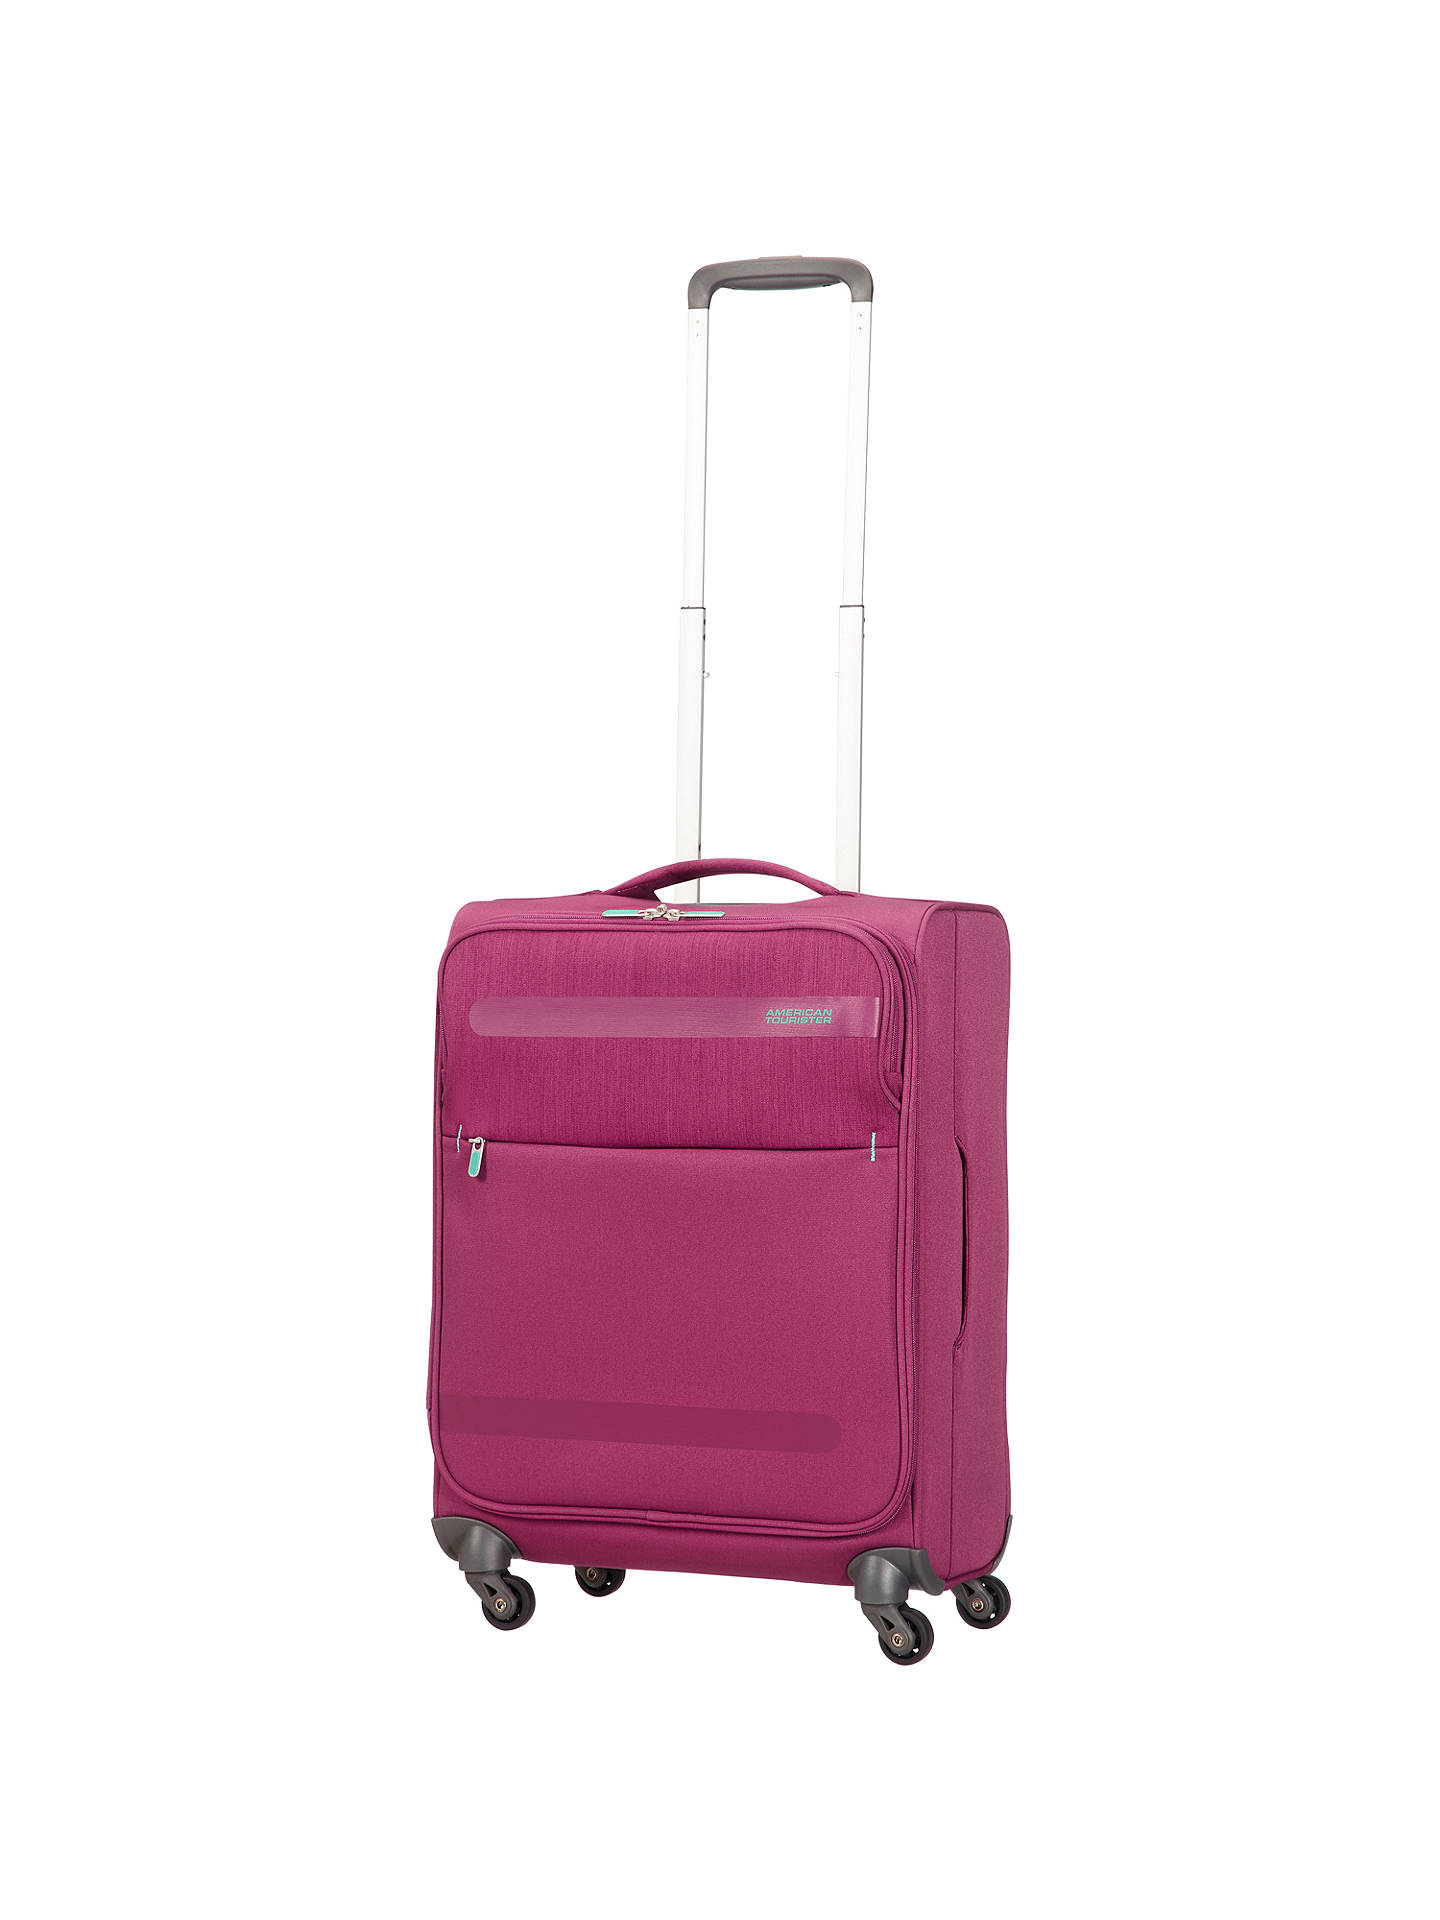 Buy American Tourister Herolite Lifestyle 4-Spinner Wheel 55cm Cabin Suitcase, Pomegranate Online at johnlewis.com